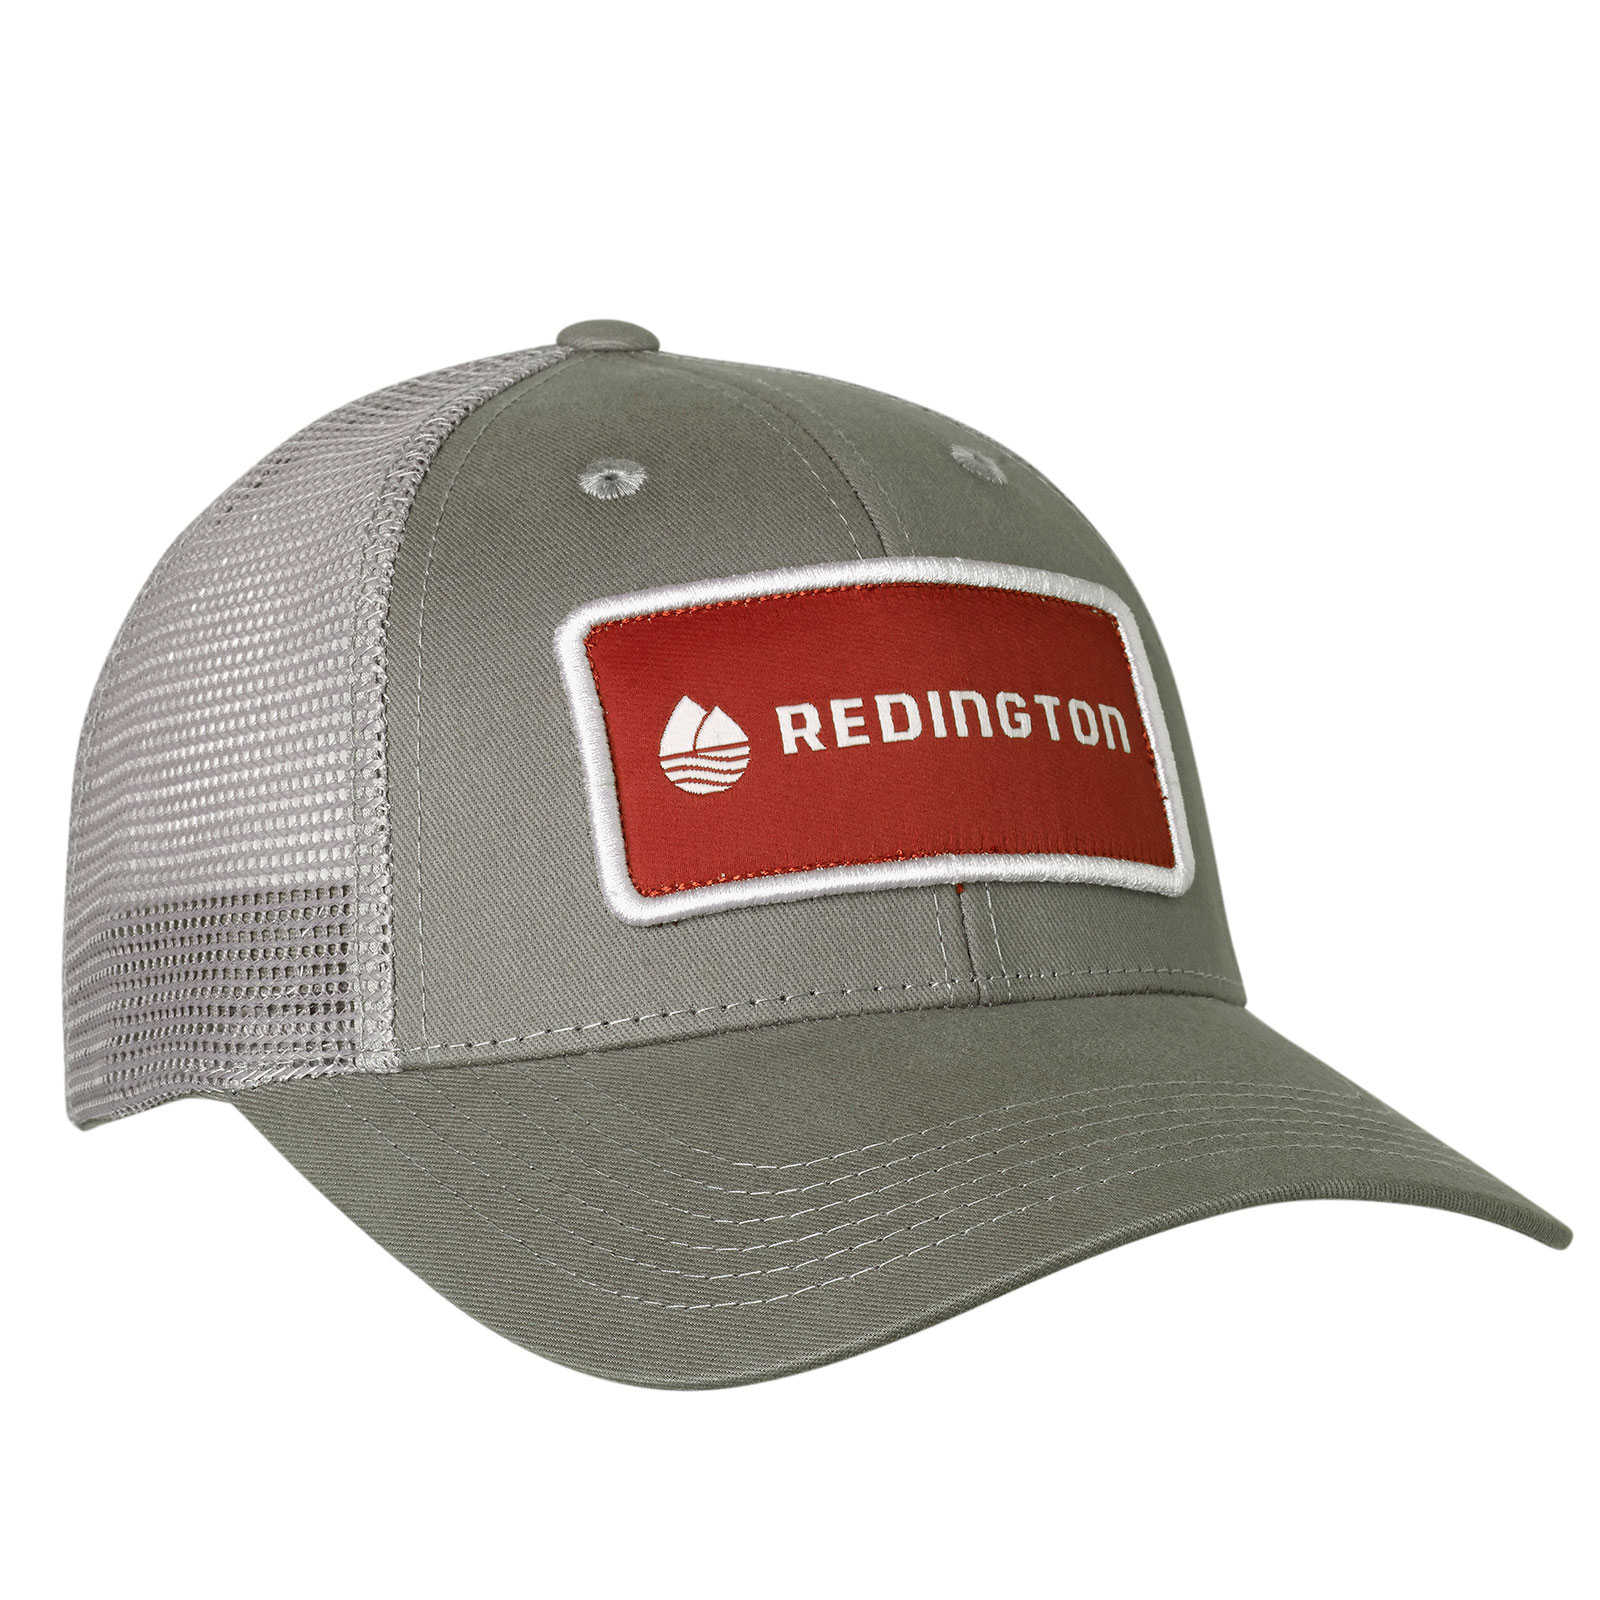 Redington Guide Meshback Baseball Hat Cap Fly Fishing Storm Grey One Size